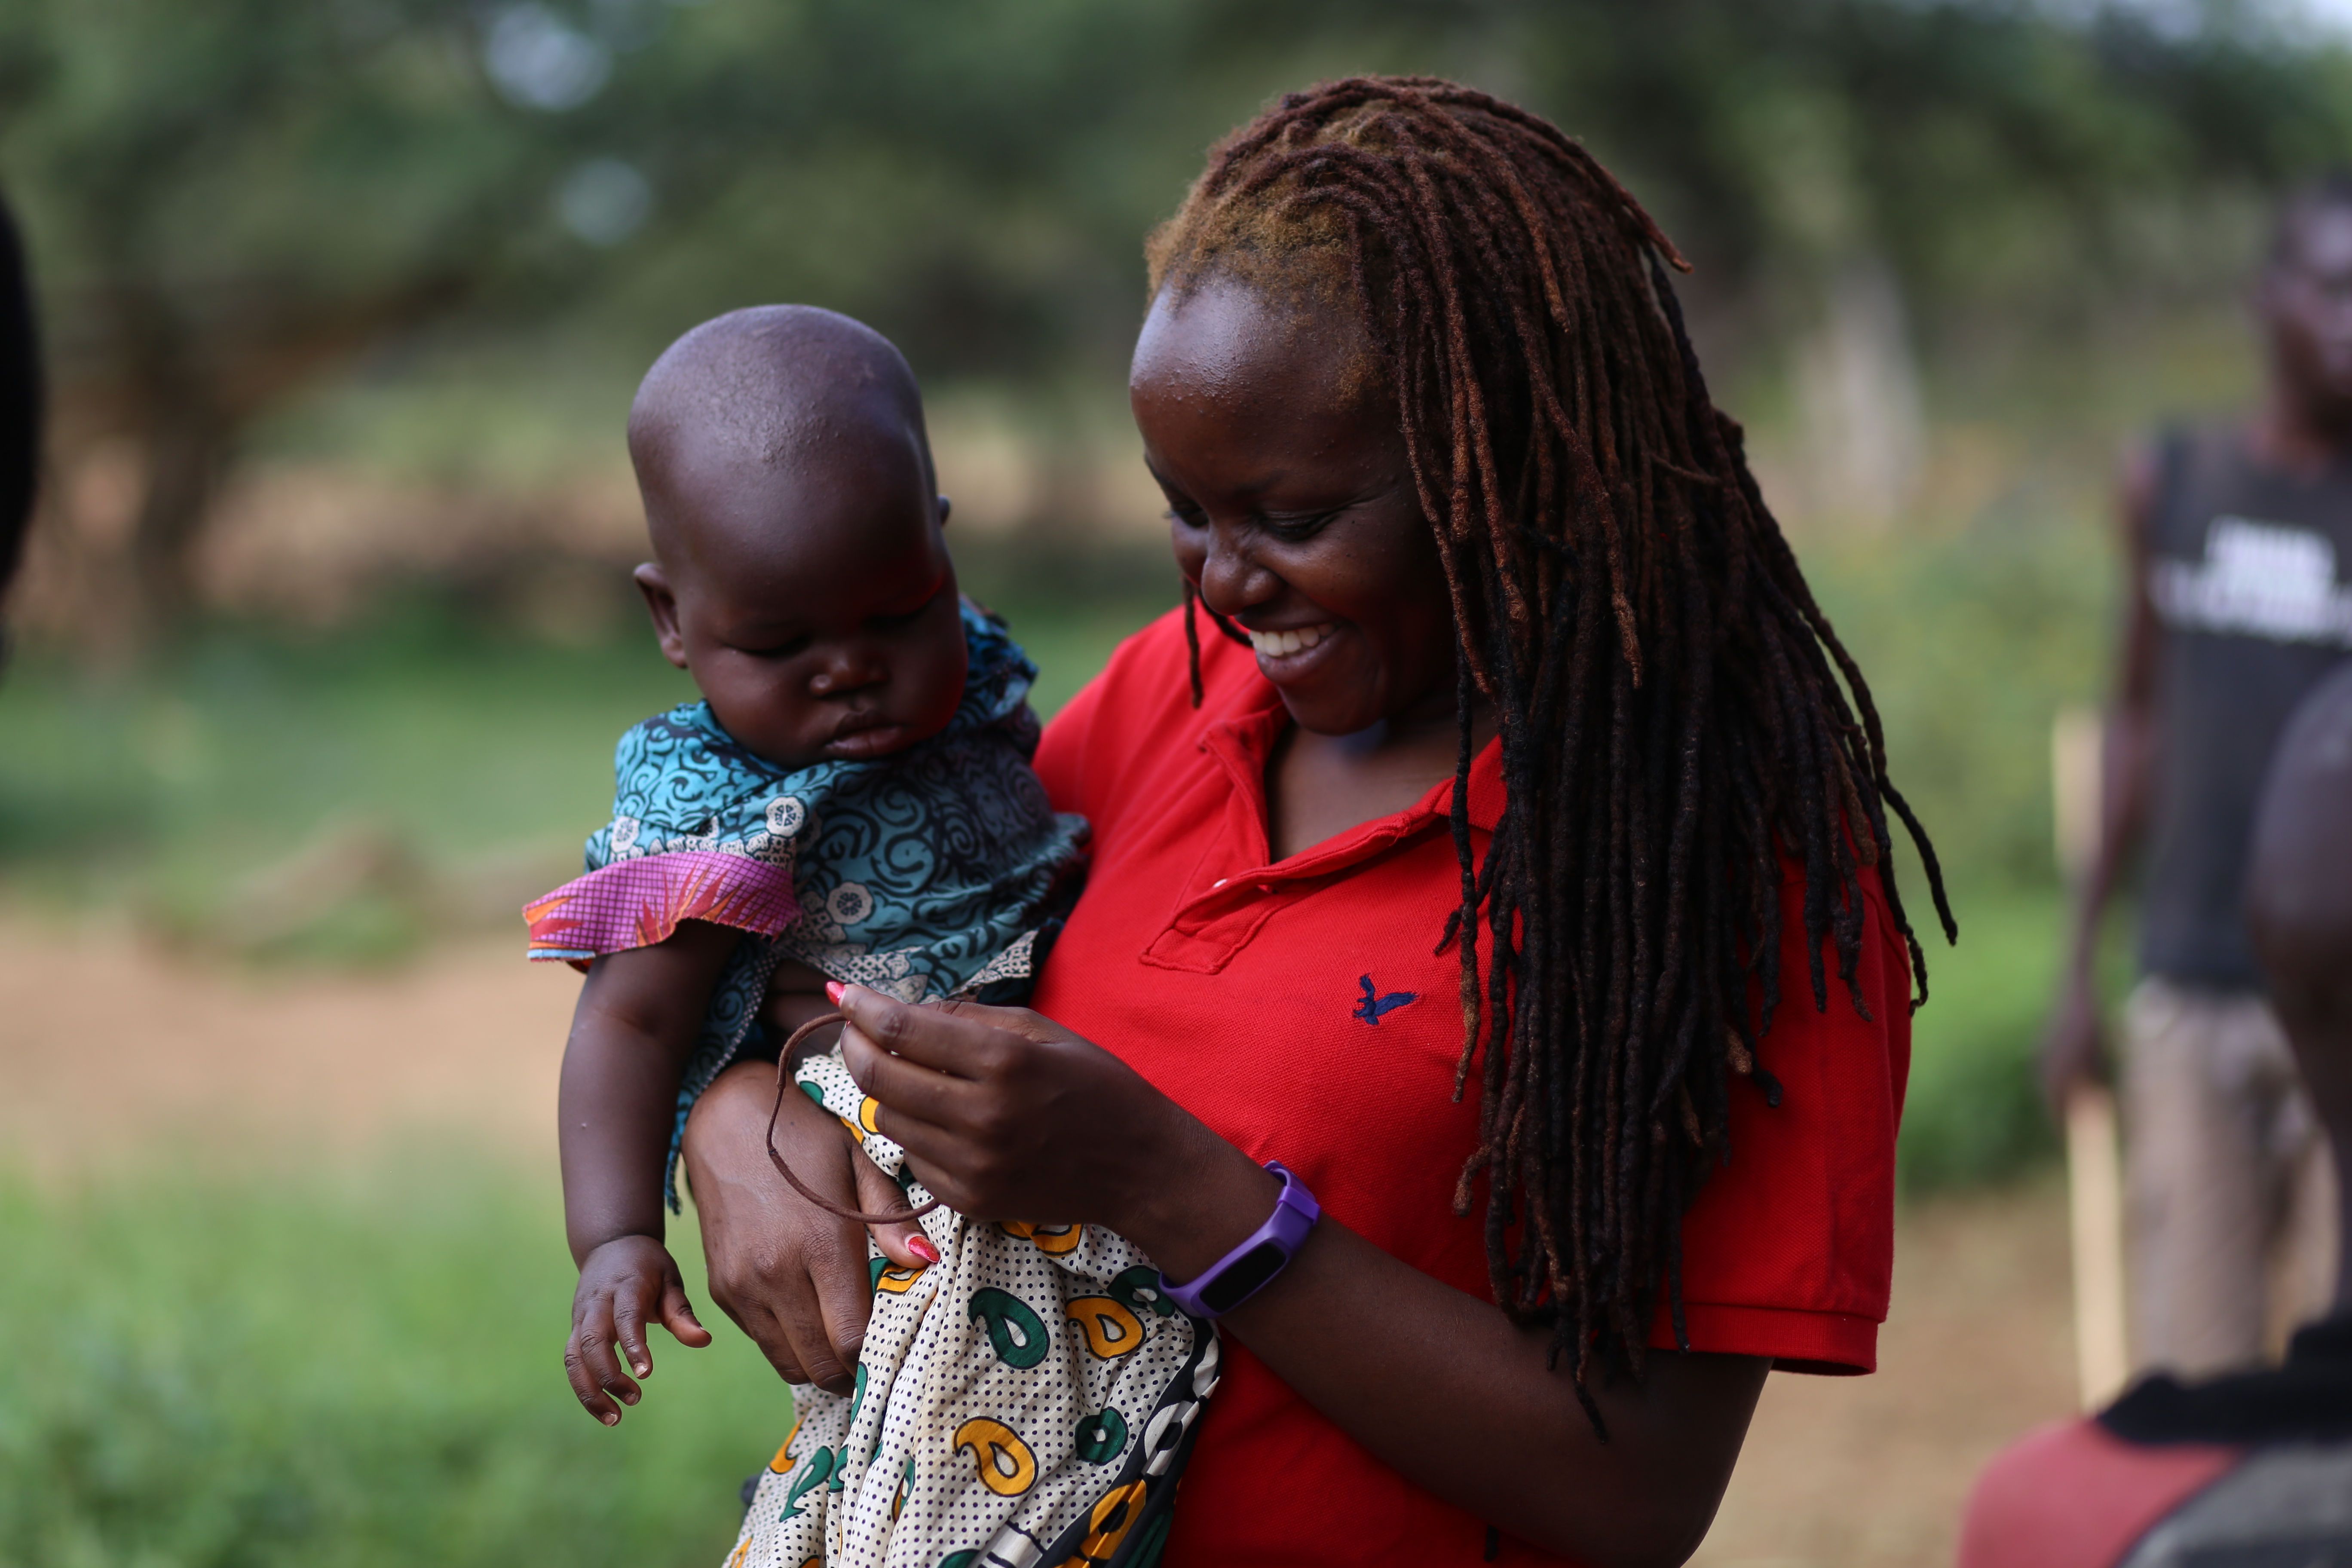 Okeyo holds a baby in West Pokot County